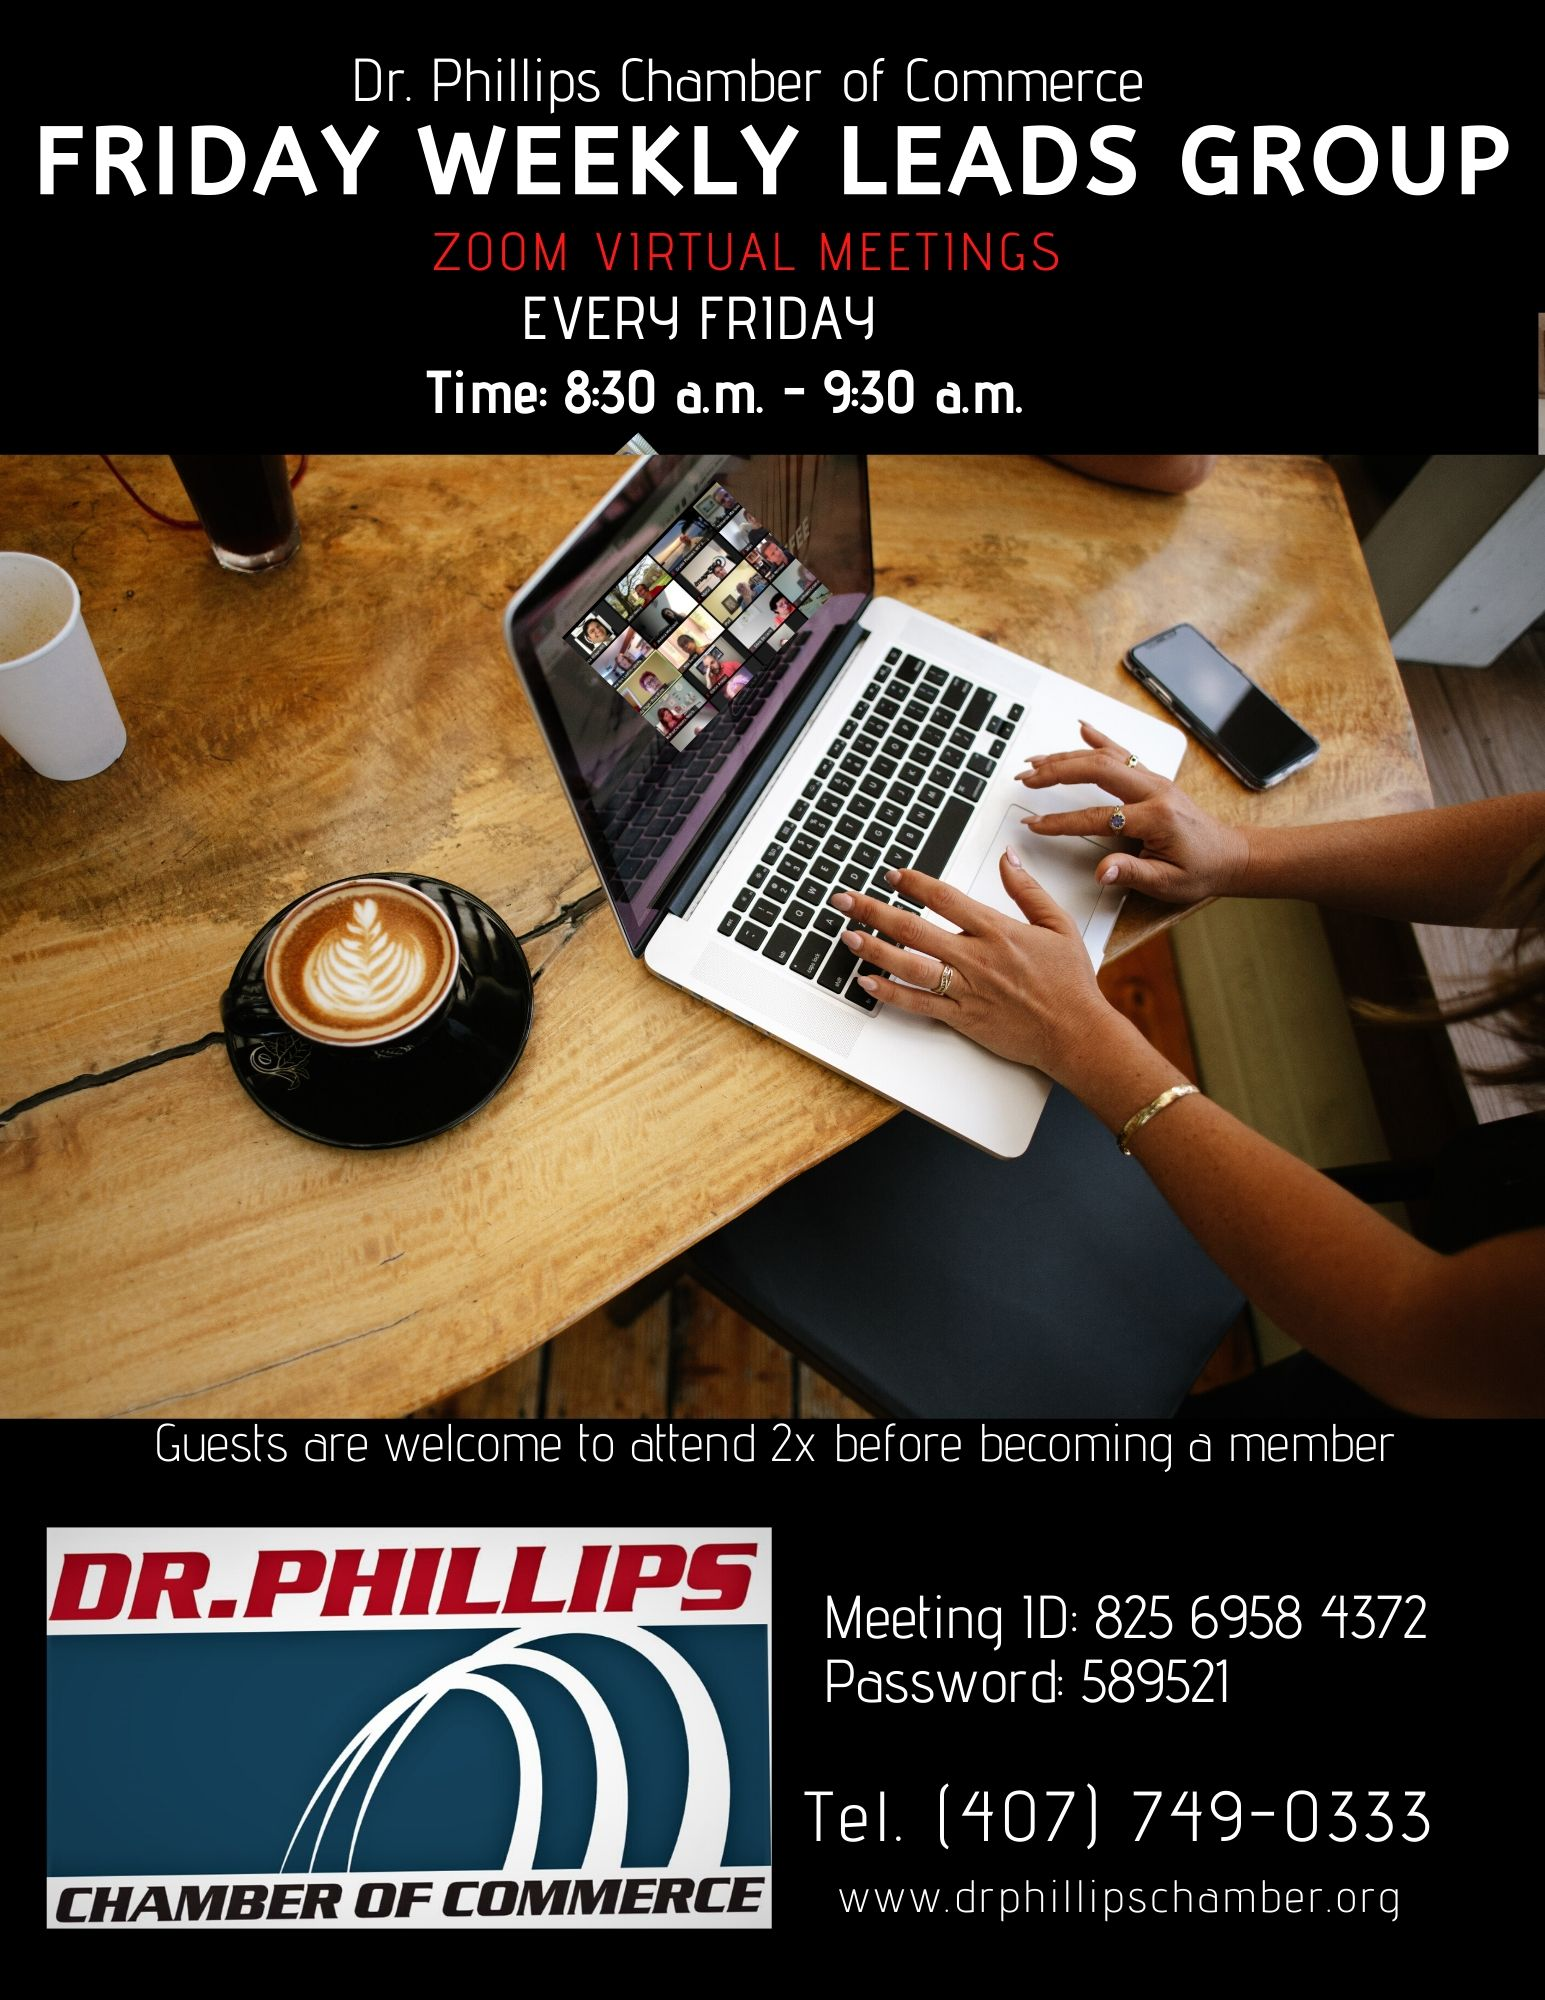 Dr. Phillips Friday weekly leads Group by Dr. Phillips Chamber of Commerce